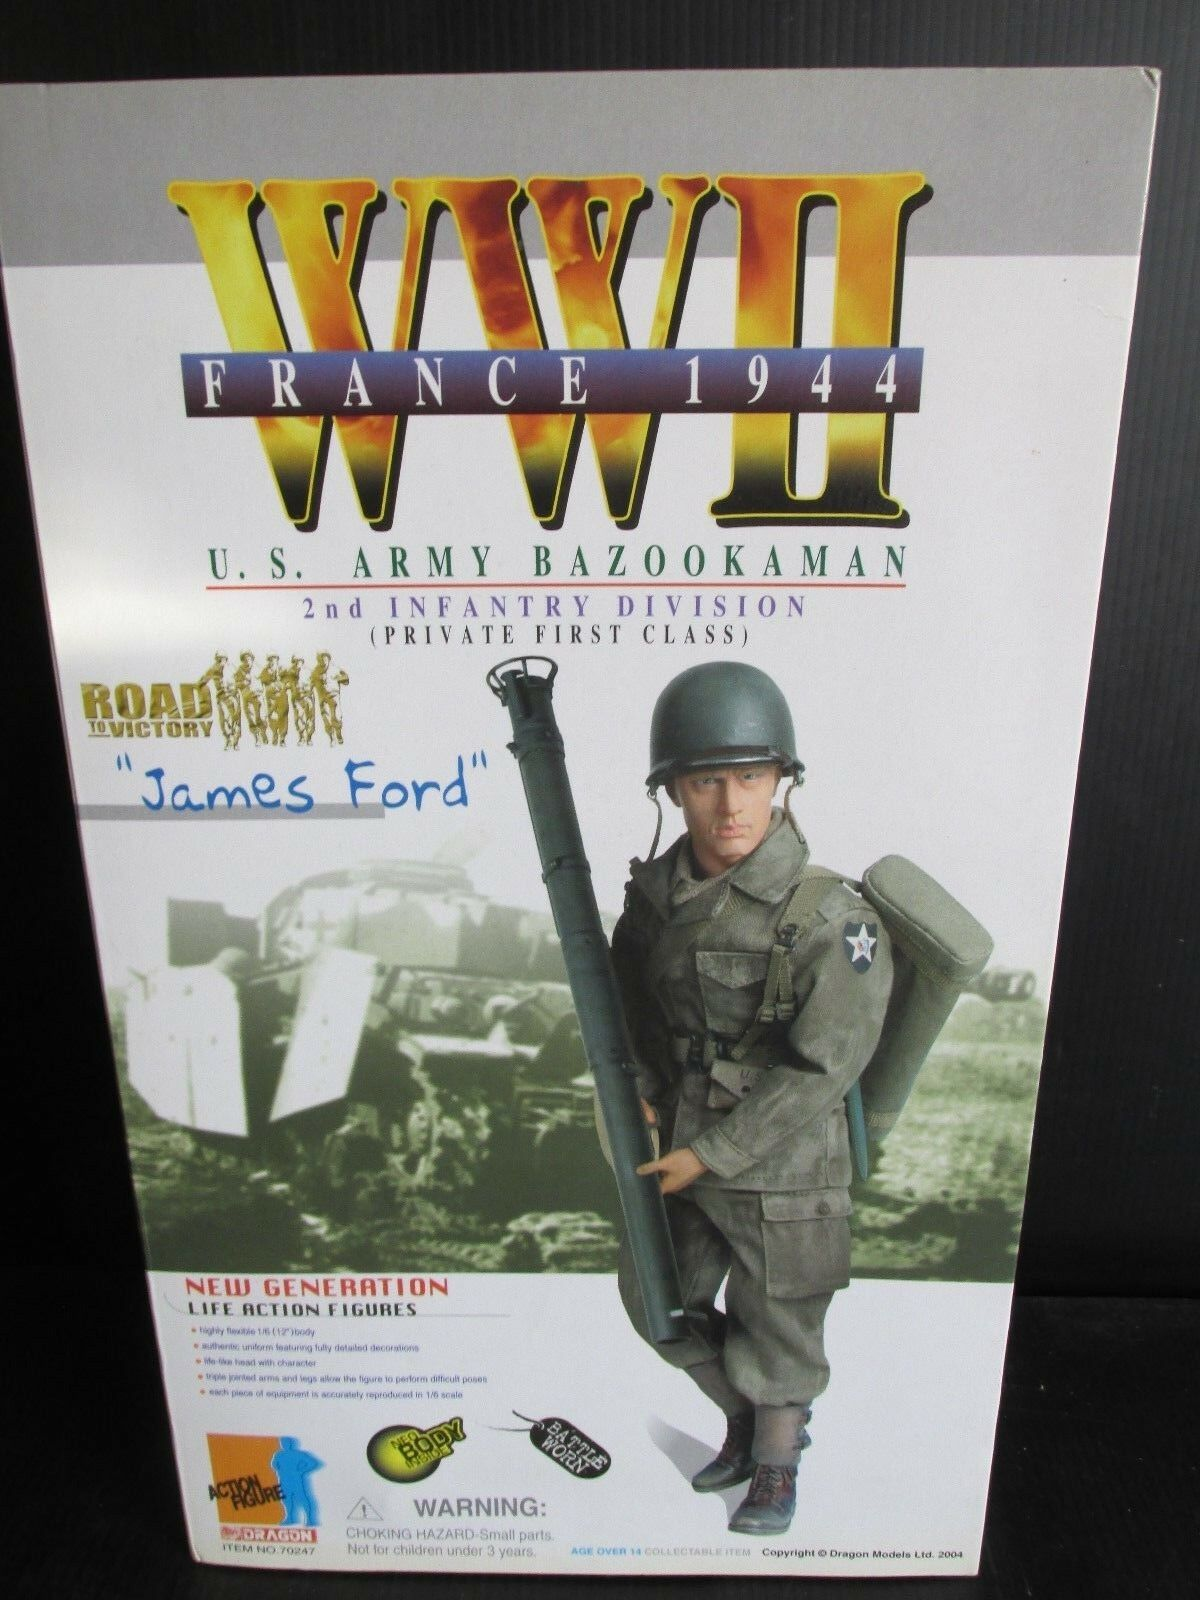 Dragon Side show 1 6TH scale figures WW 11 FRANCE 1944  JAMES FORD